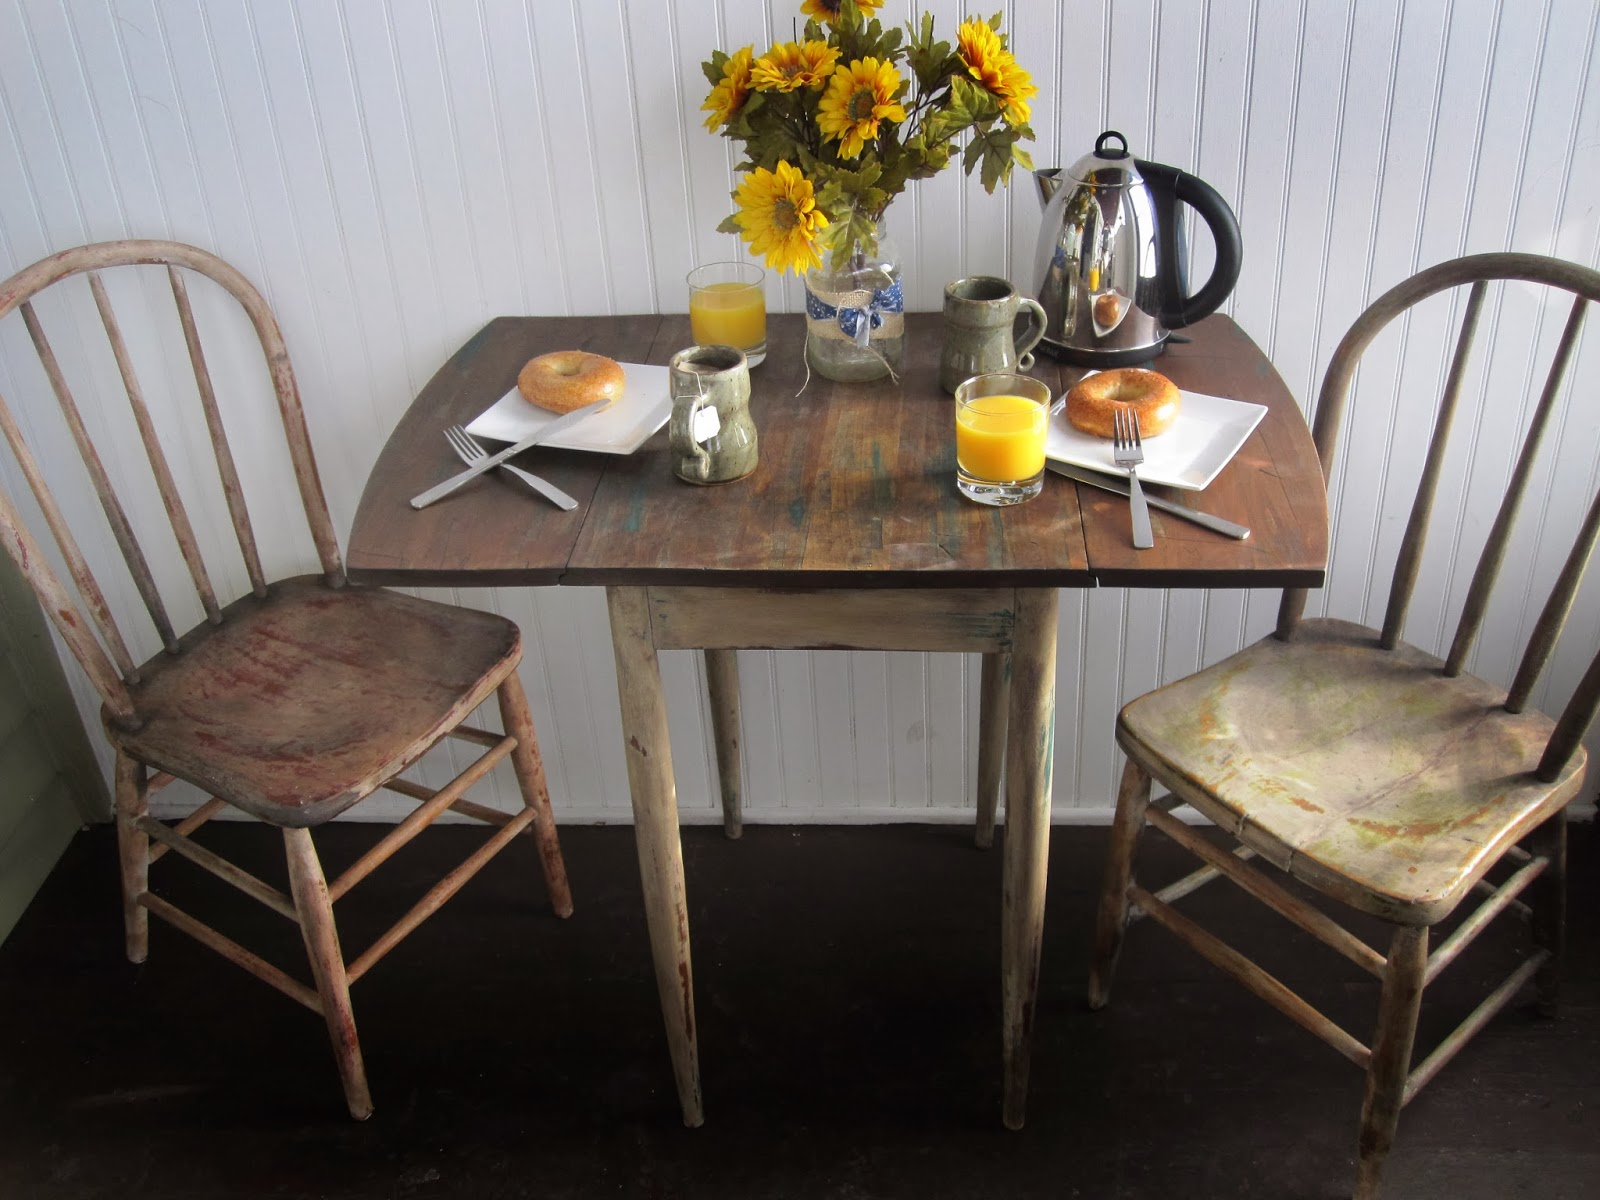 Breakfast Table And Chairs For Two Posture Operators Chair Chubby Junk Person Dining Set